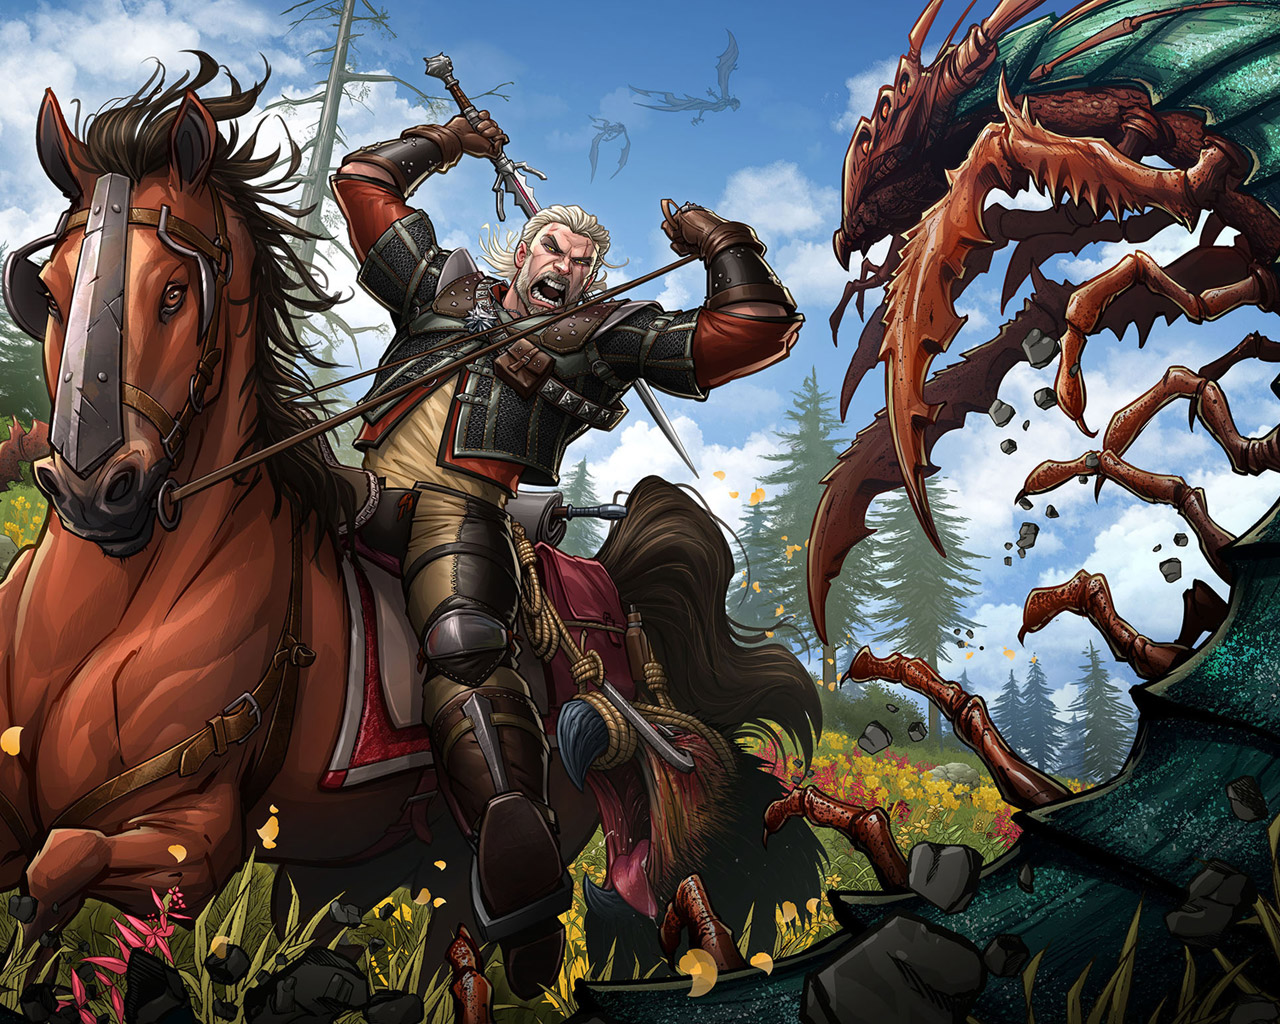 Free The Witcher 3 Wallpaper in 1280x1024